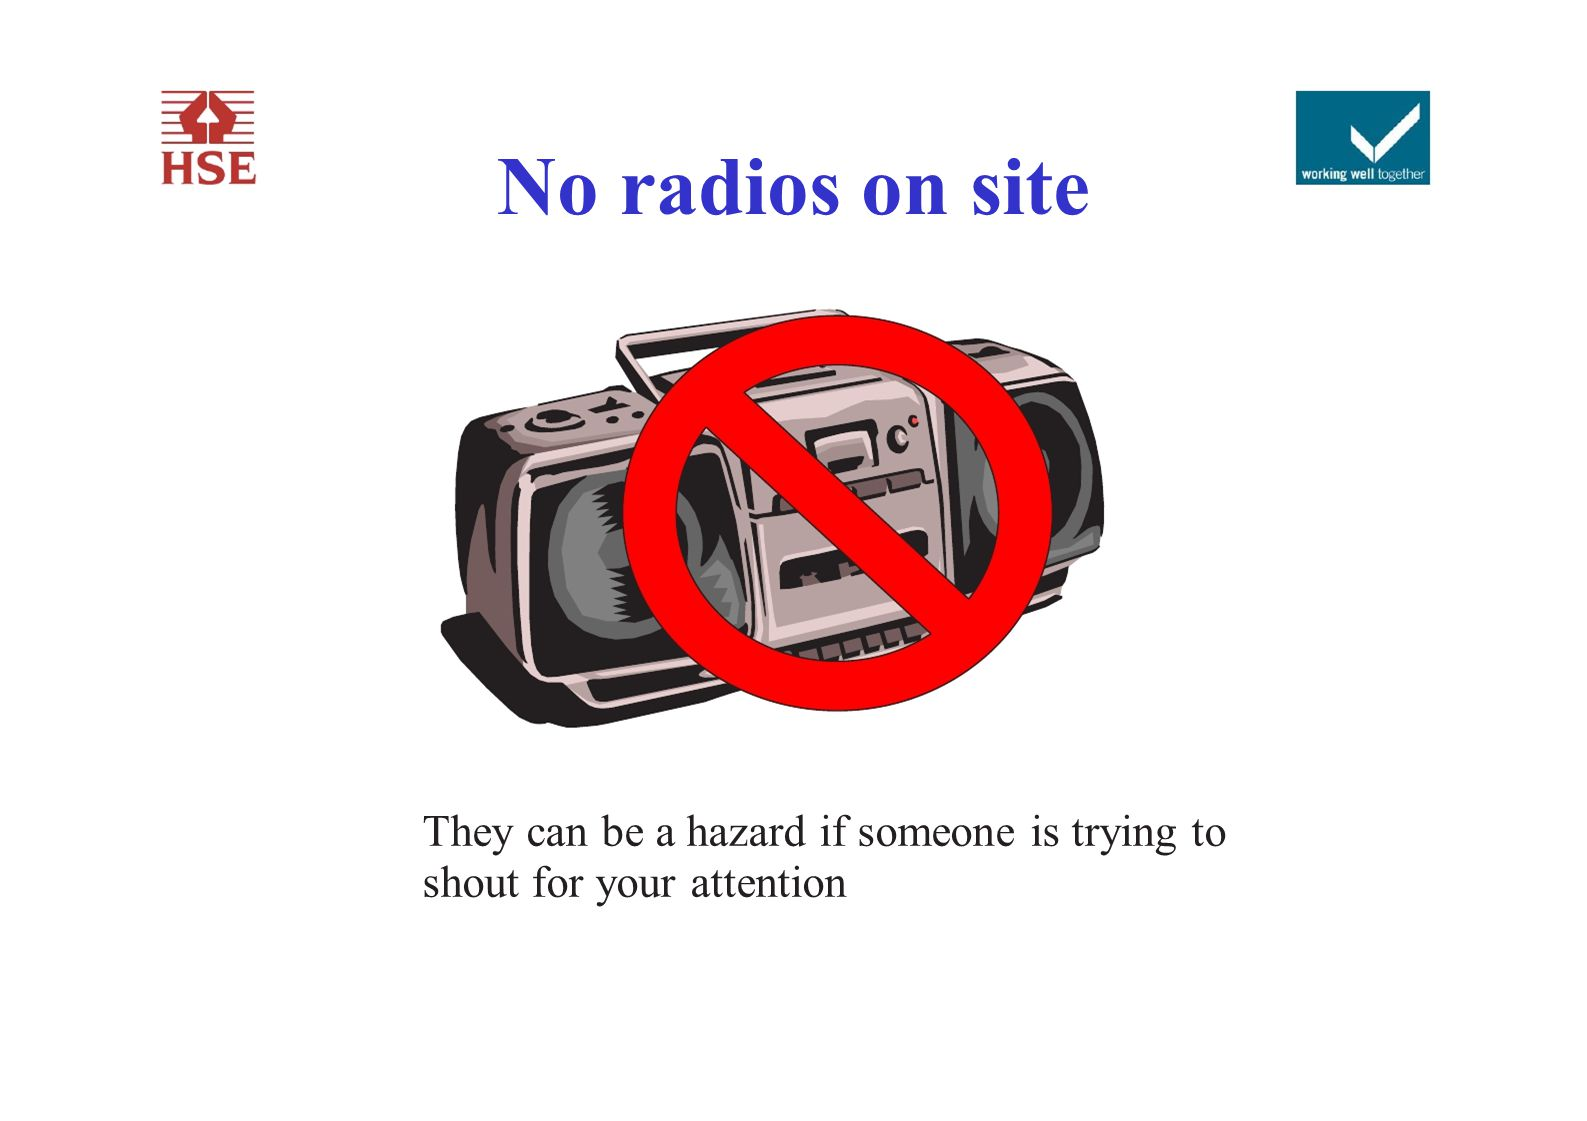 No radios on site They can be a hazard if someone is trying to shout for your attention